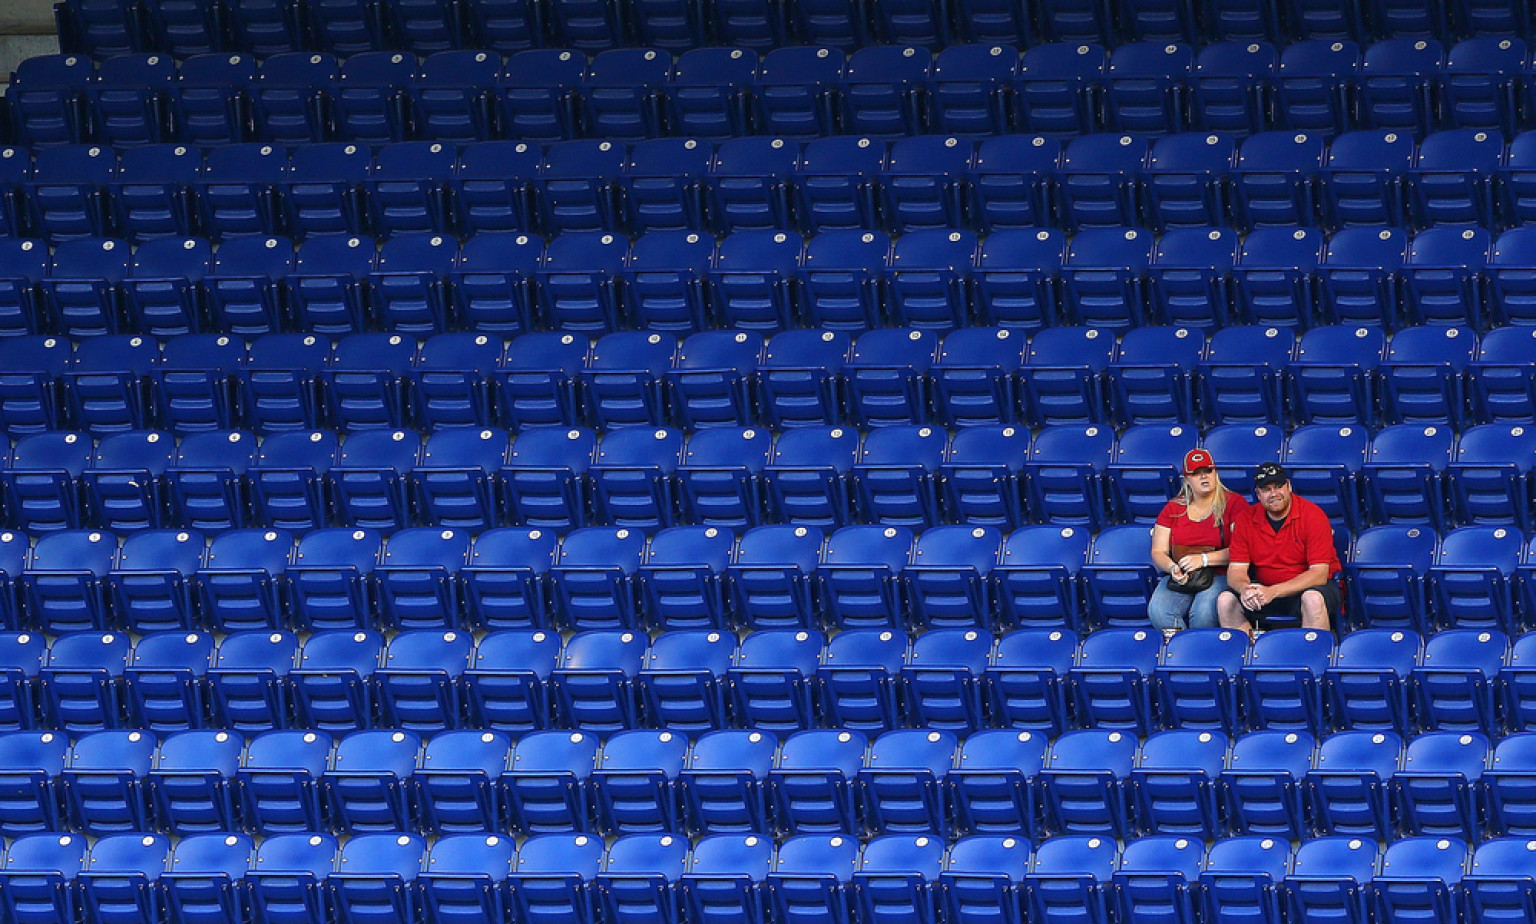 Fans Sitting in Empty Marlins Park